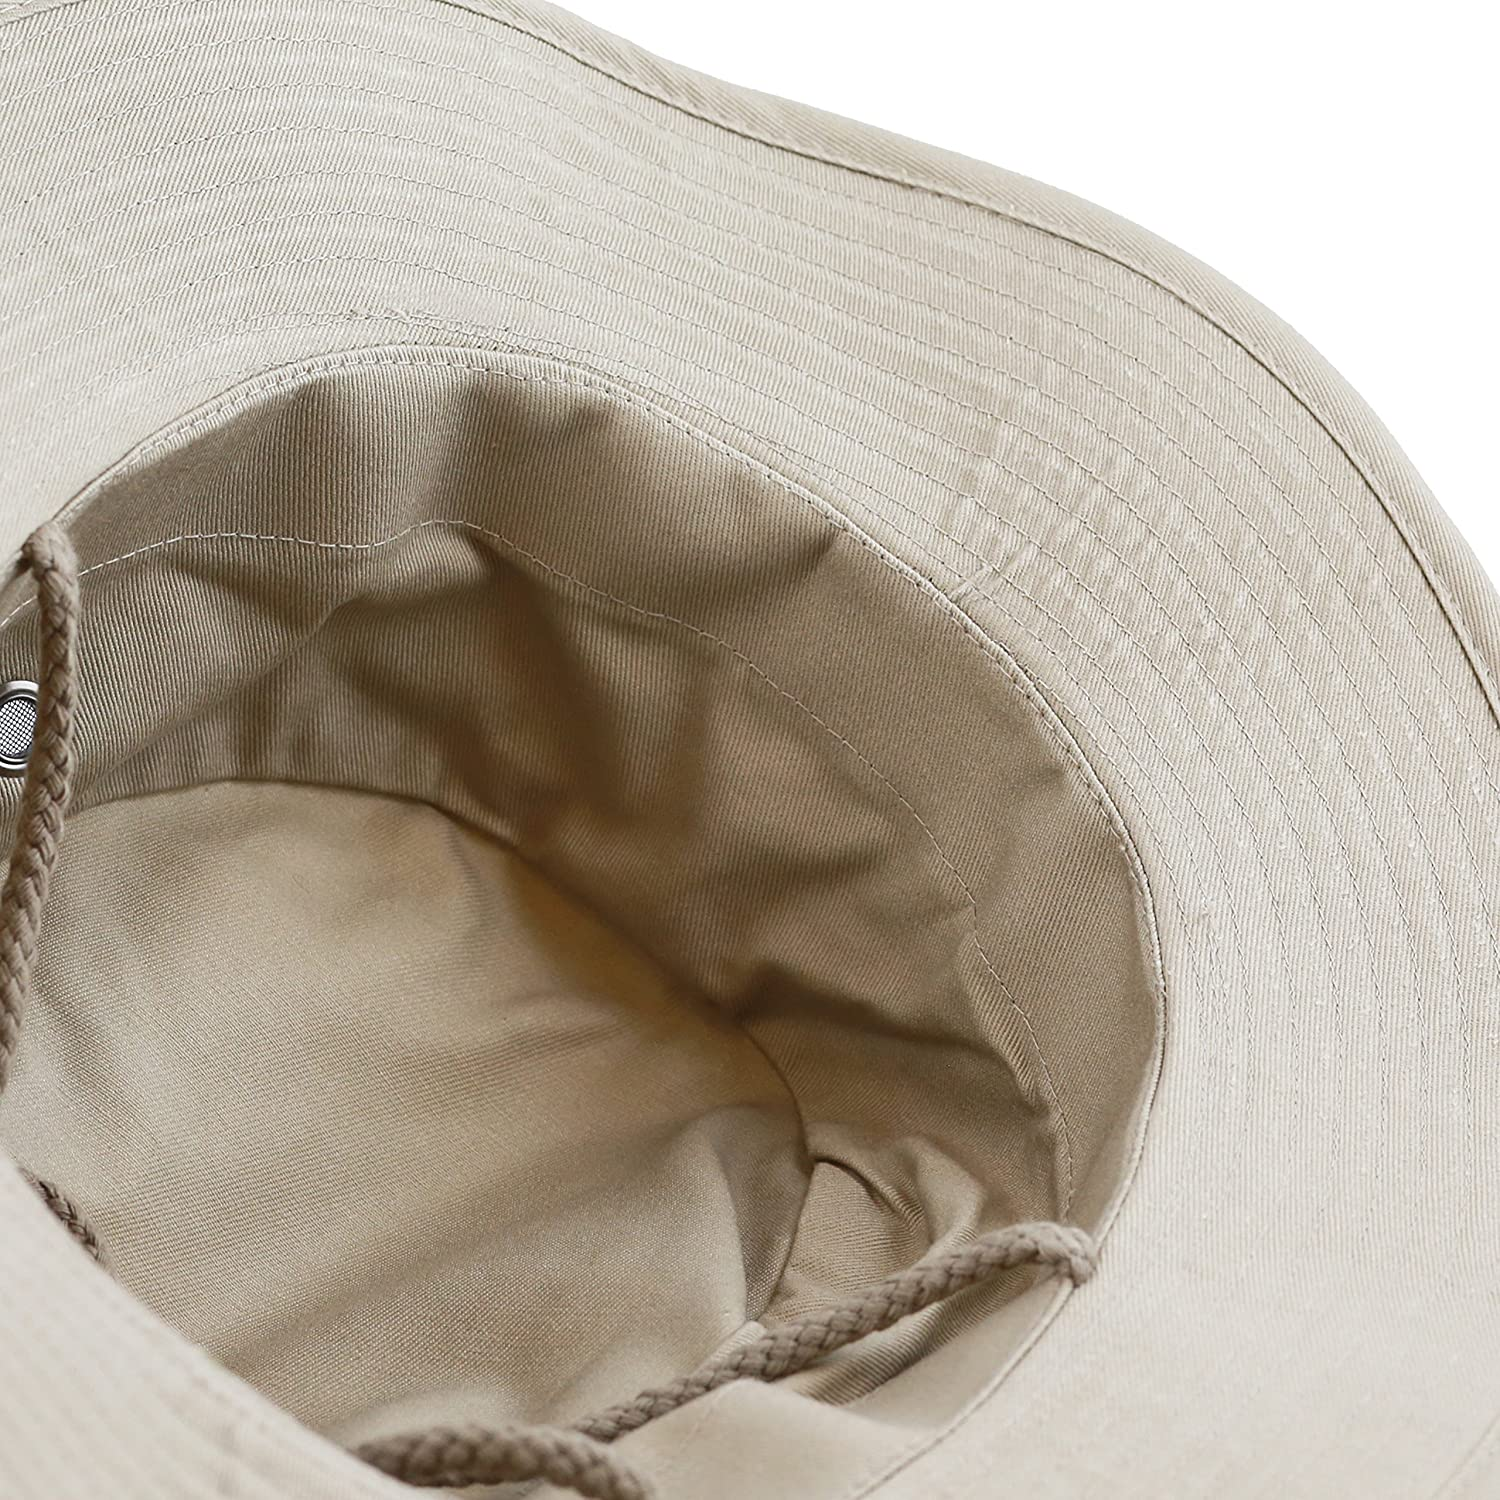 The Hat Depot 300N1516 Premium Quality Military Boonie Hat